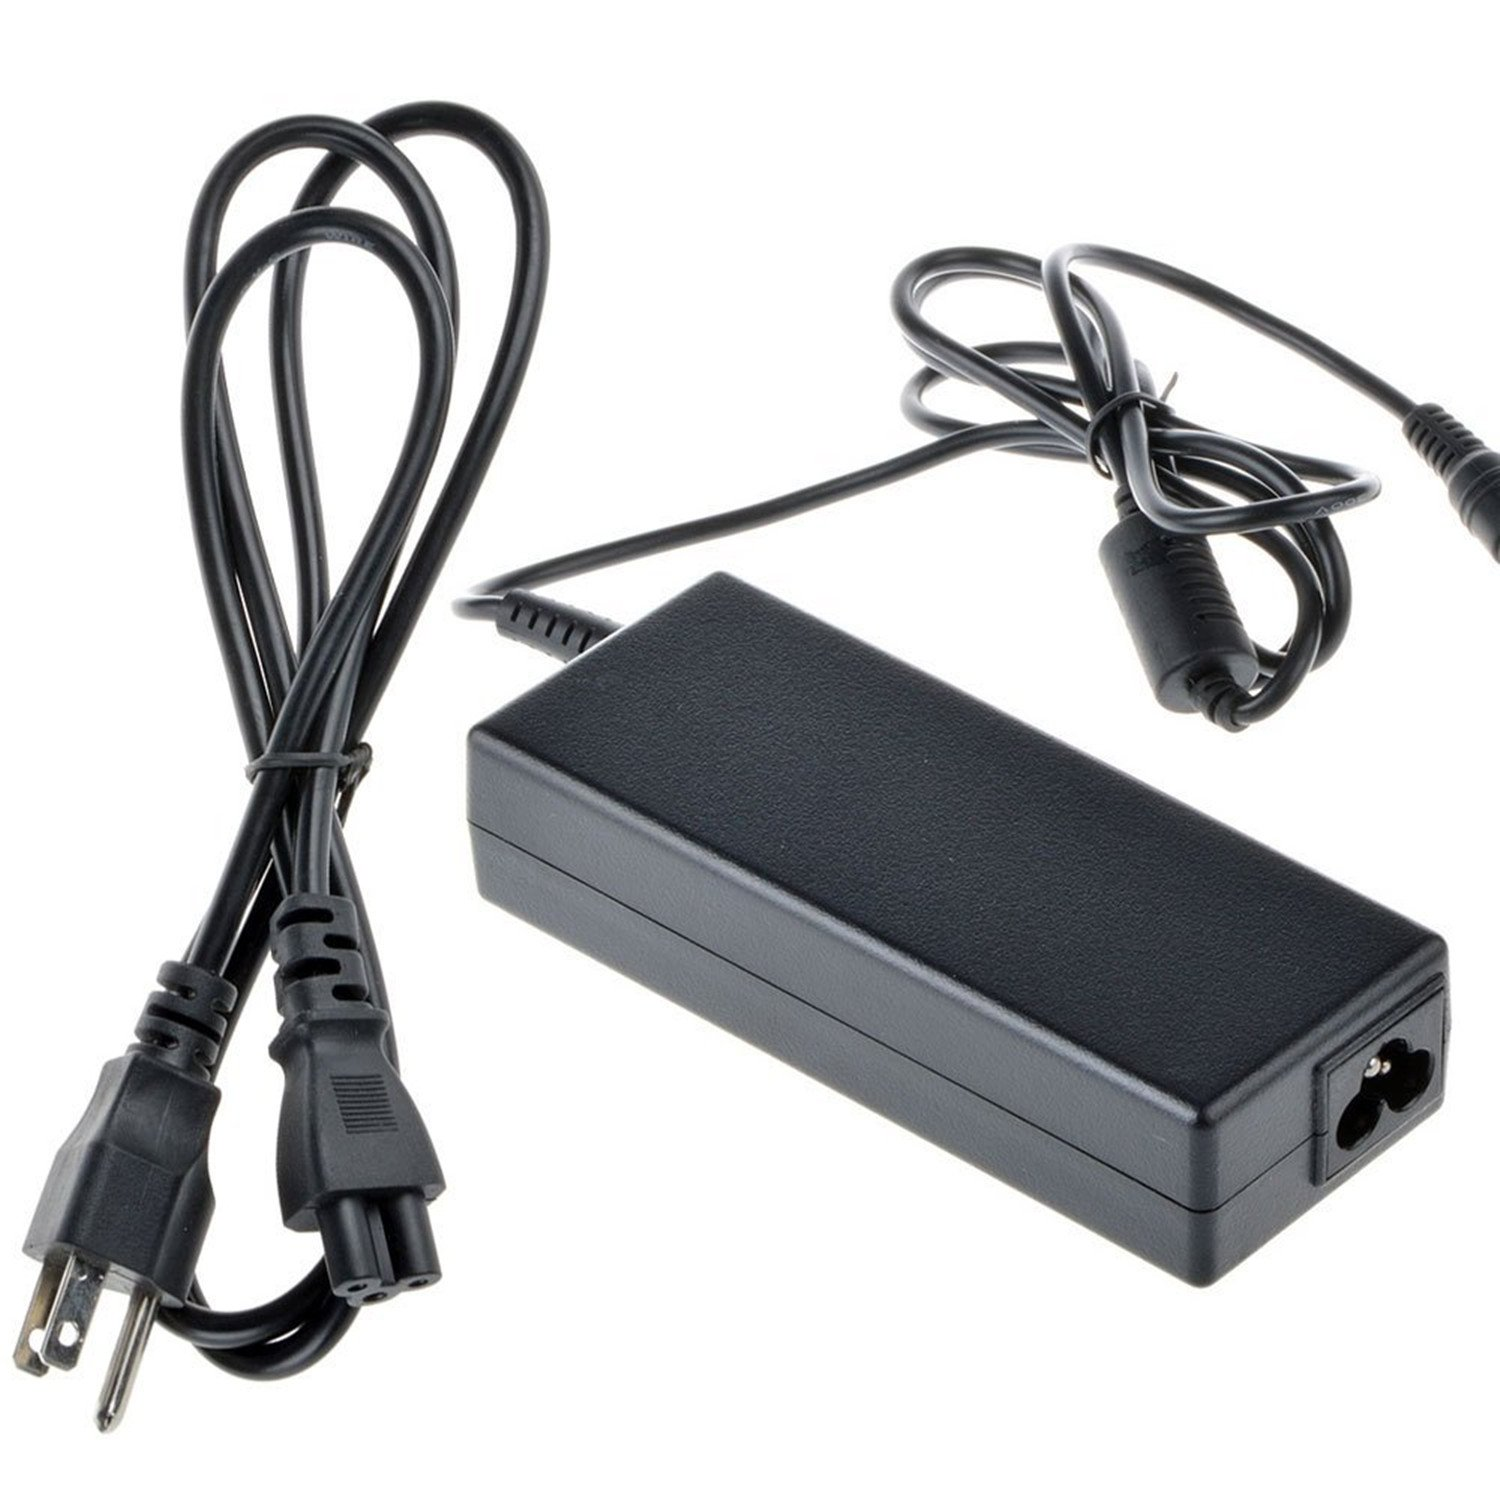 Amazon.com: NEW AC Adapter For Gateway MS2274 MS2285 Laptop ...